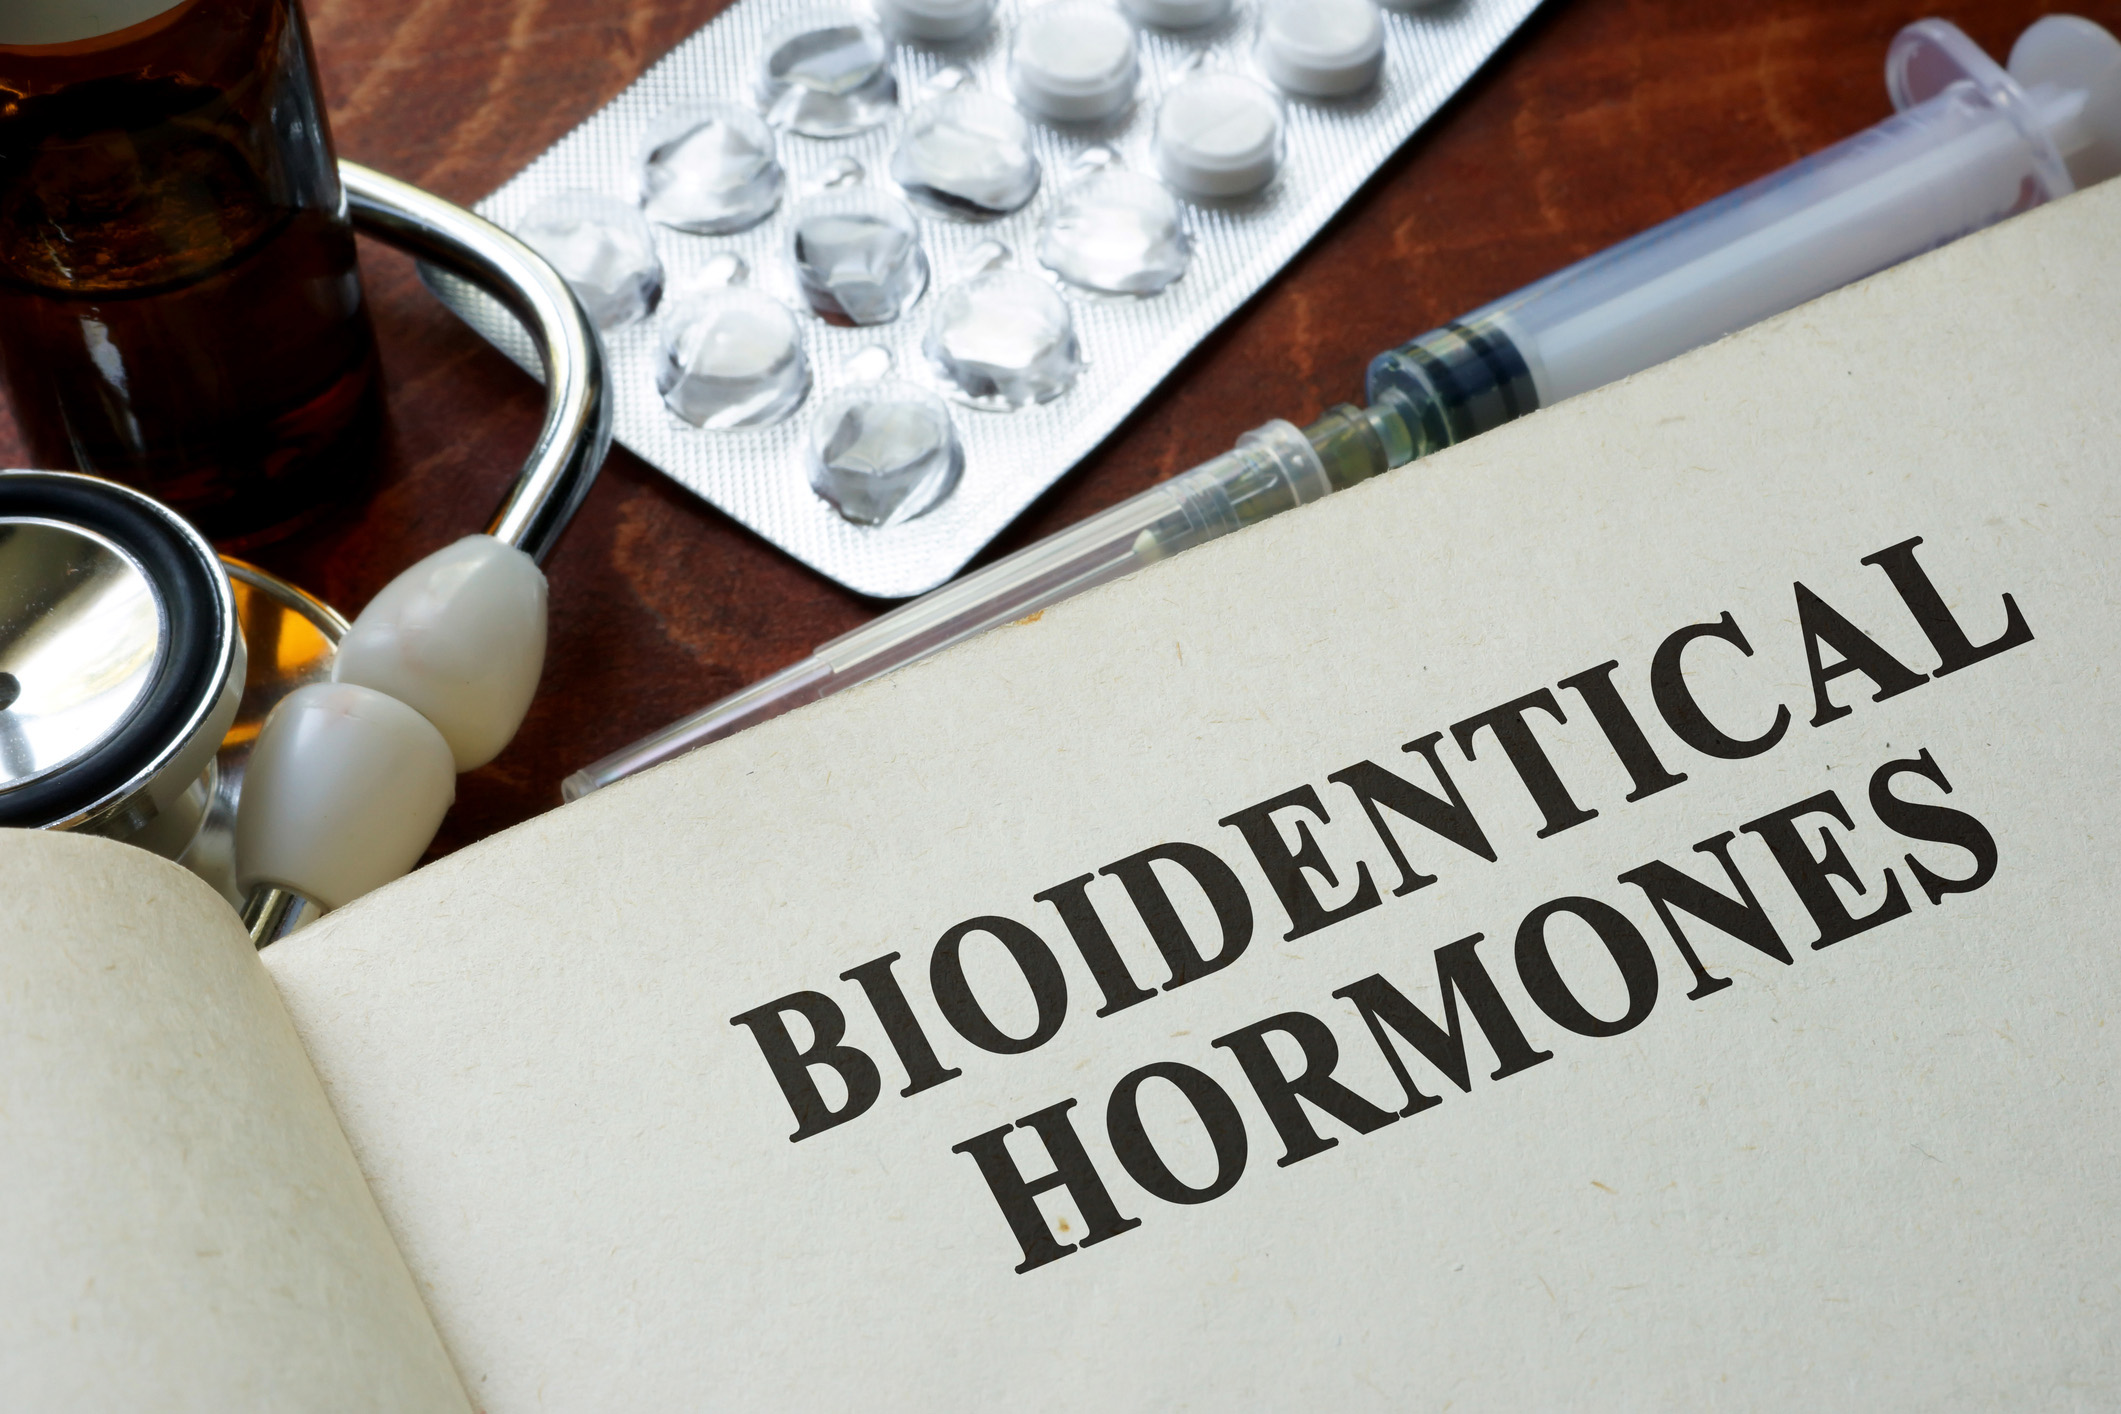 A book of Bioidentical Hormones next to a syringe, stethoscope and pack of pills